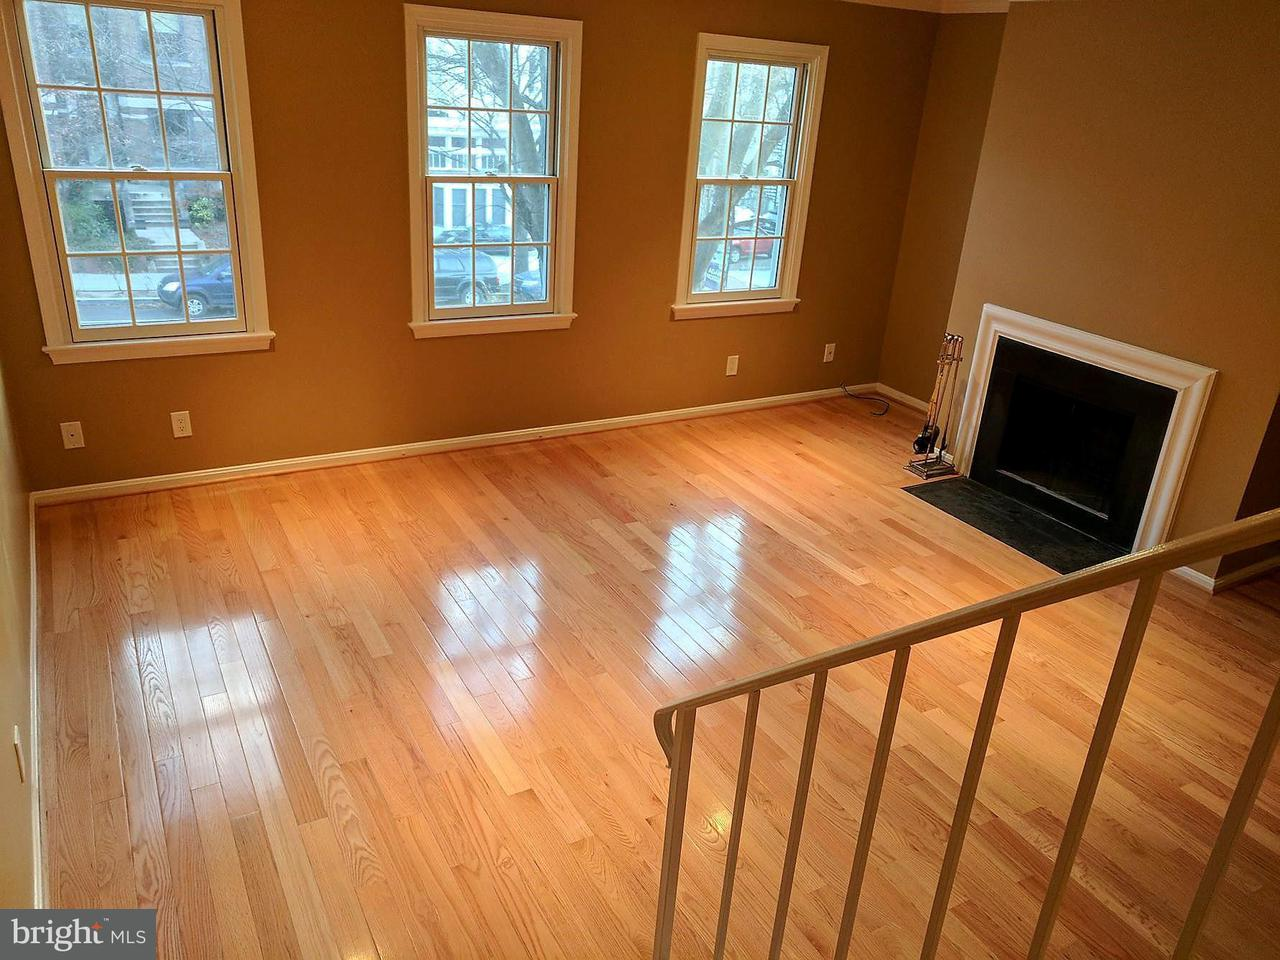 Additional photo for property listing at 1953 Calvert St NW #d  Washington, District Of Columbia 20009 United States